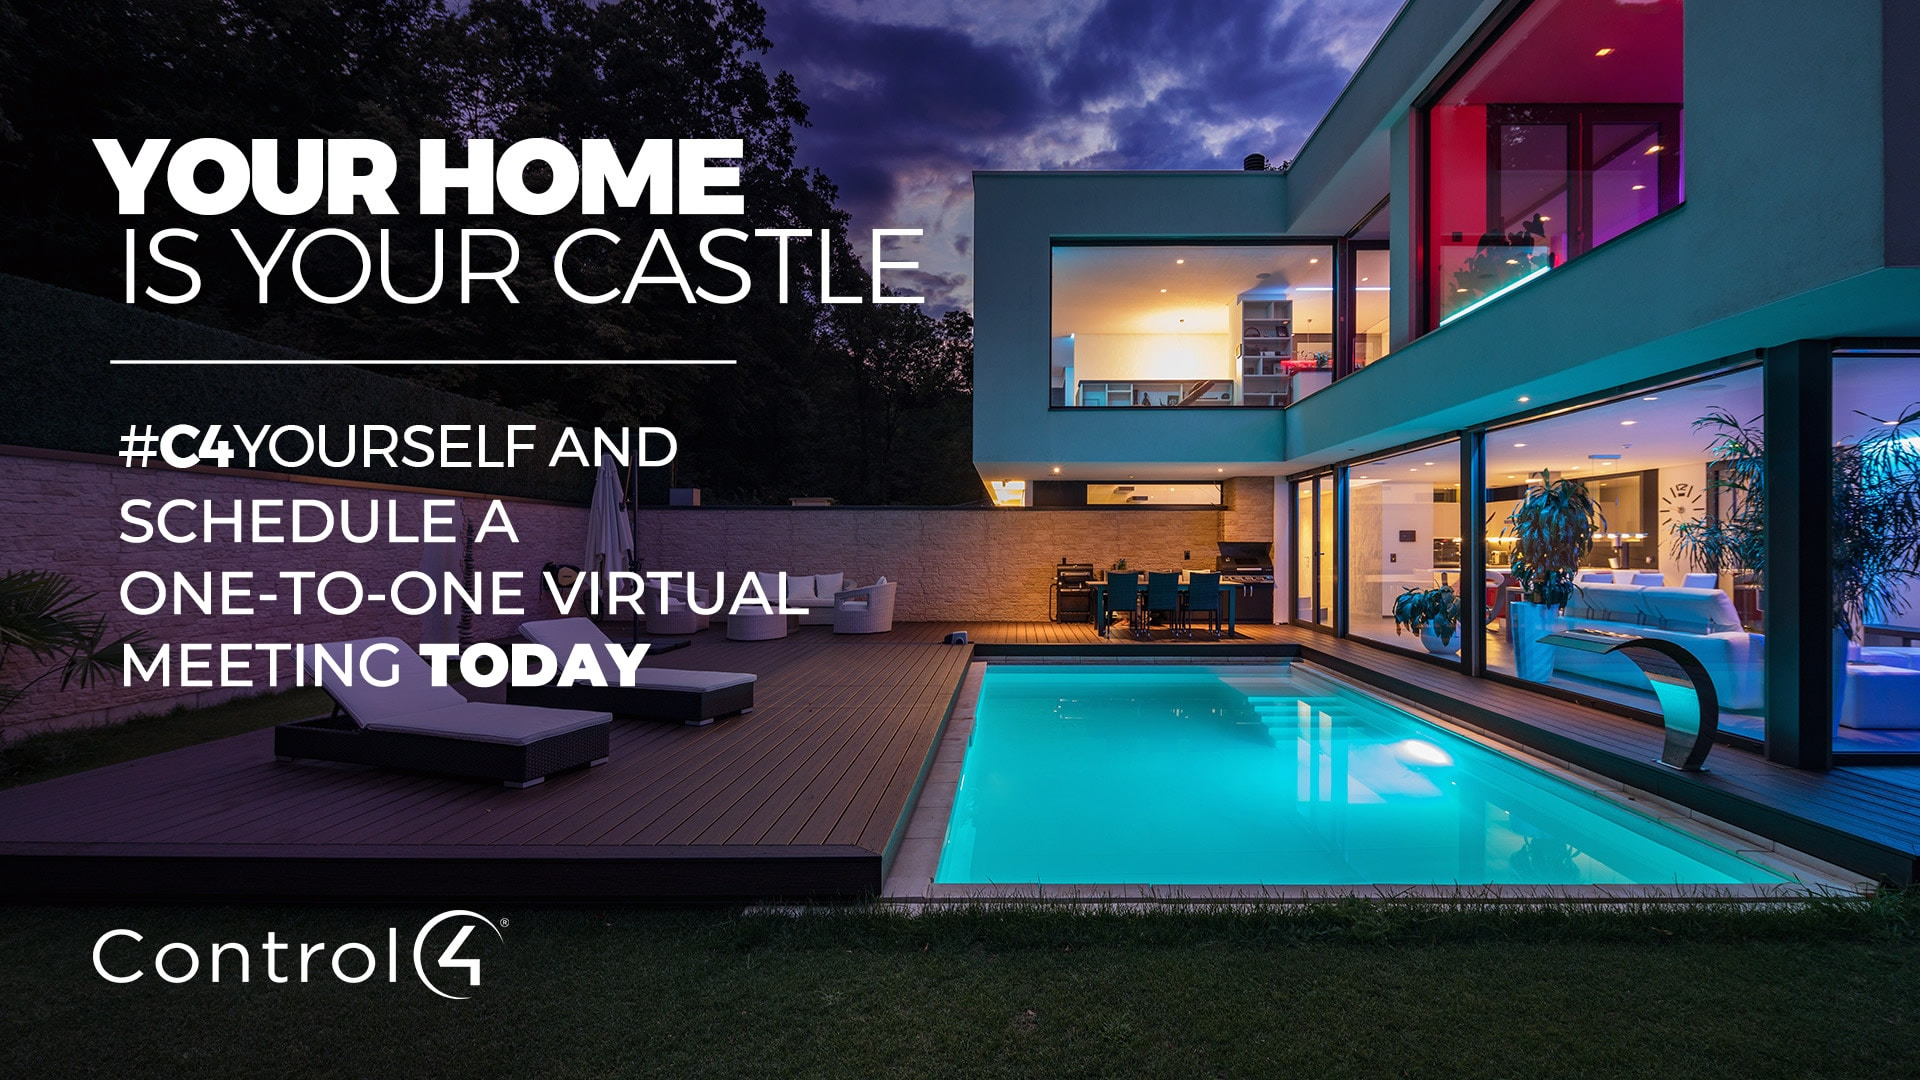 Your Home is Your Castle - #C4 Your Self